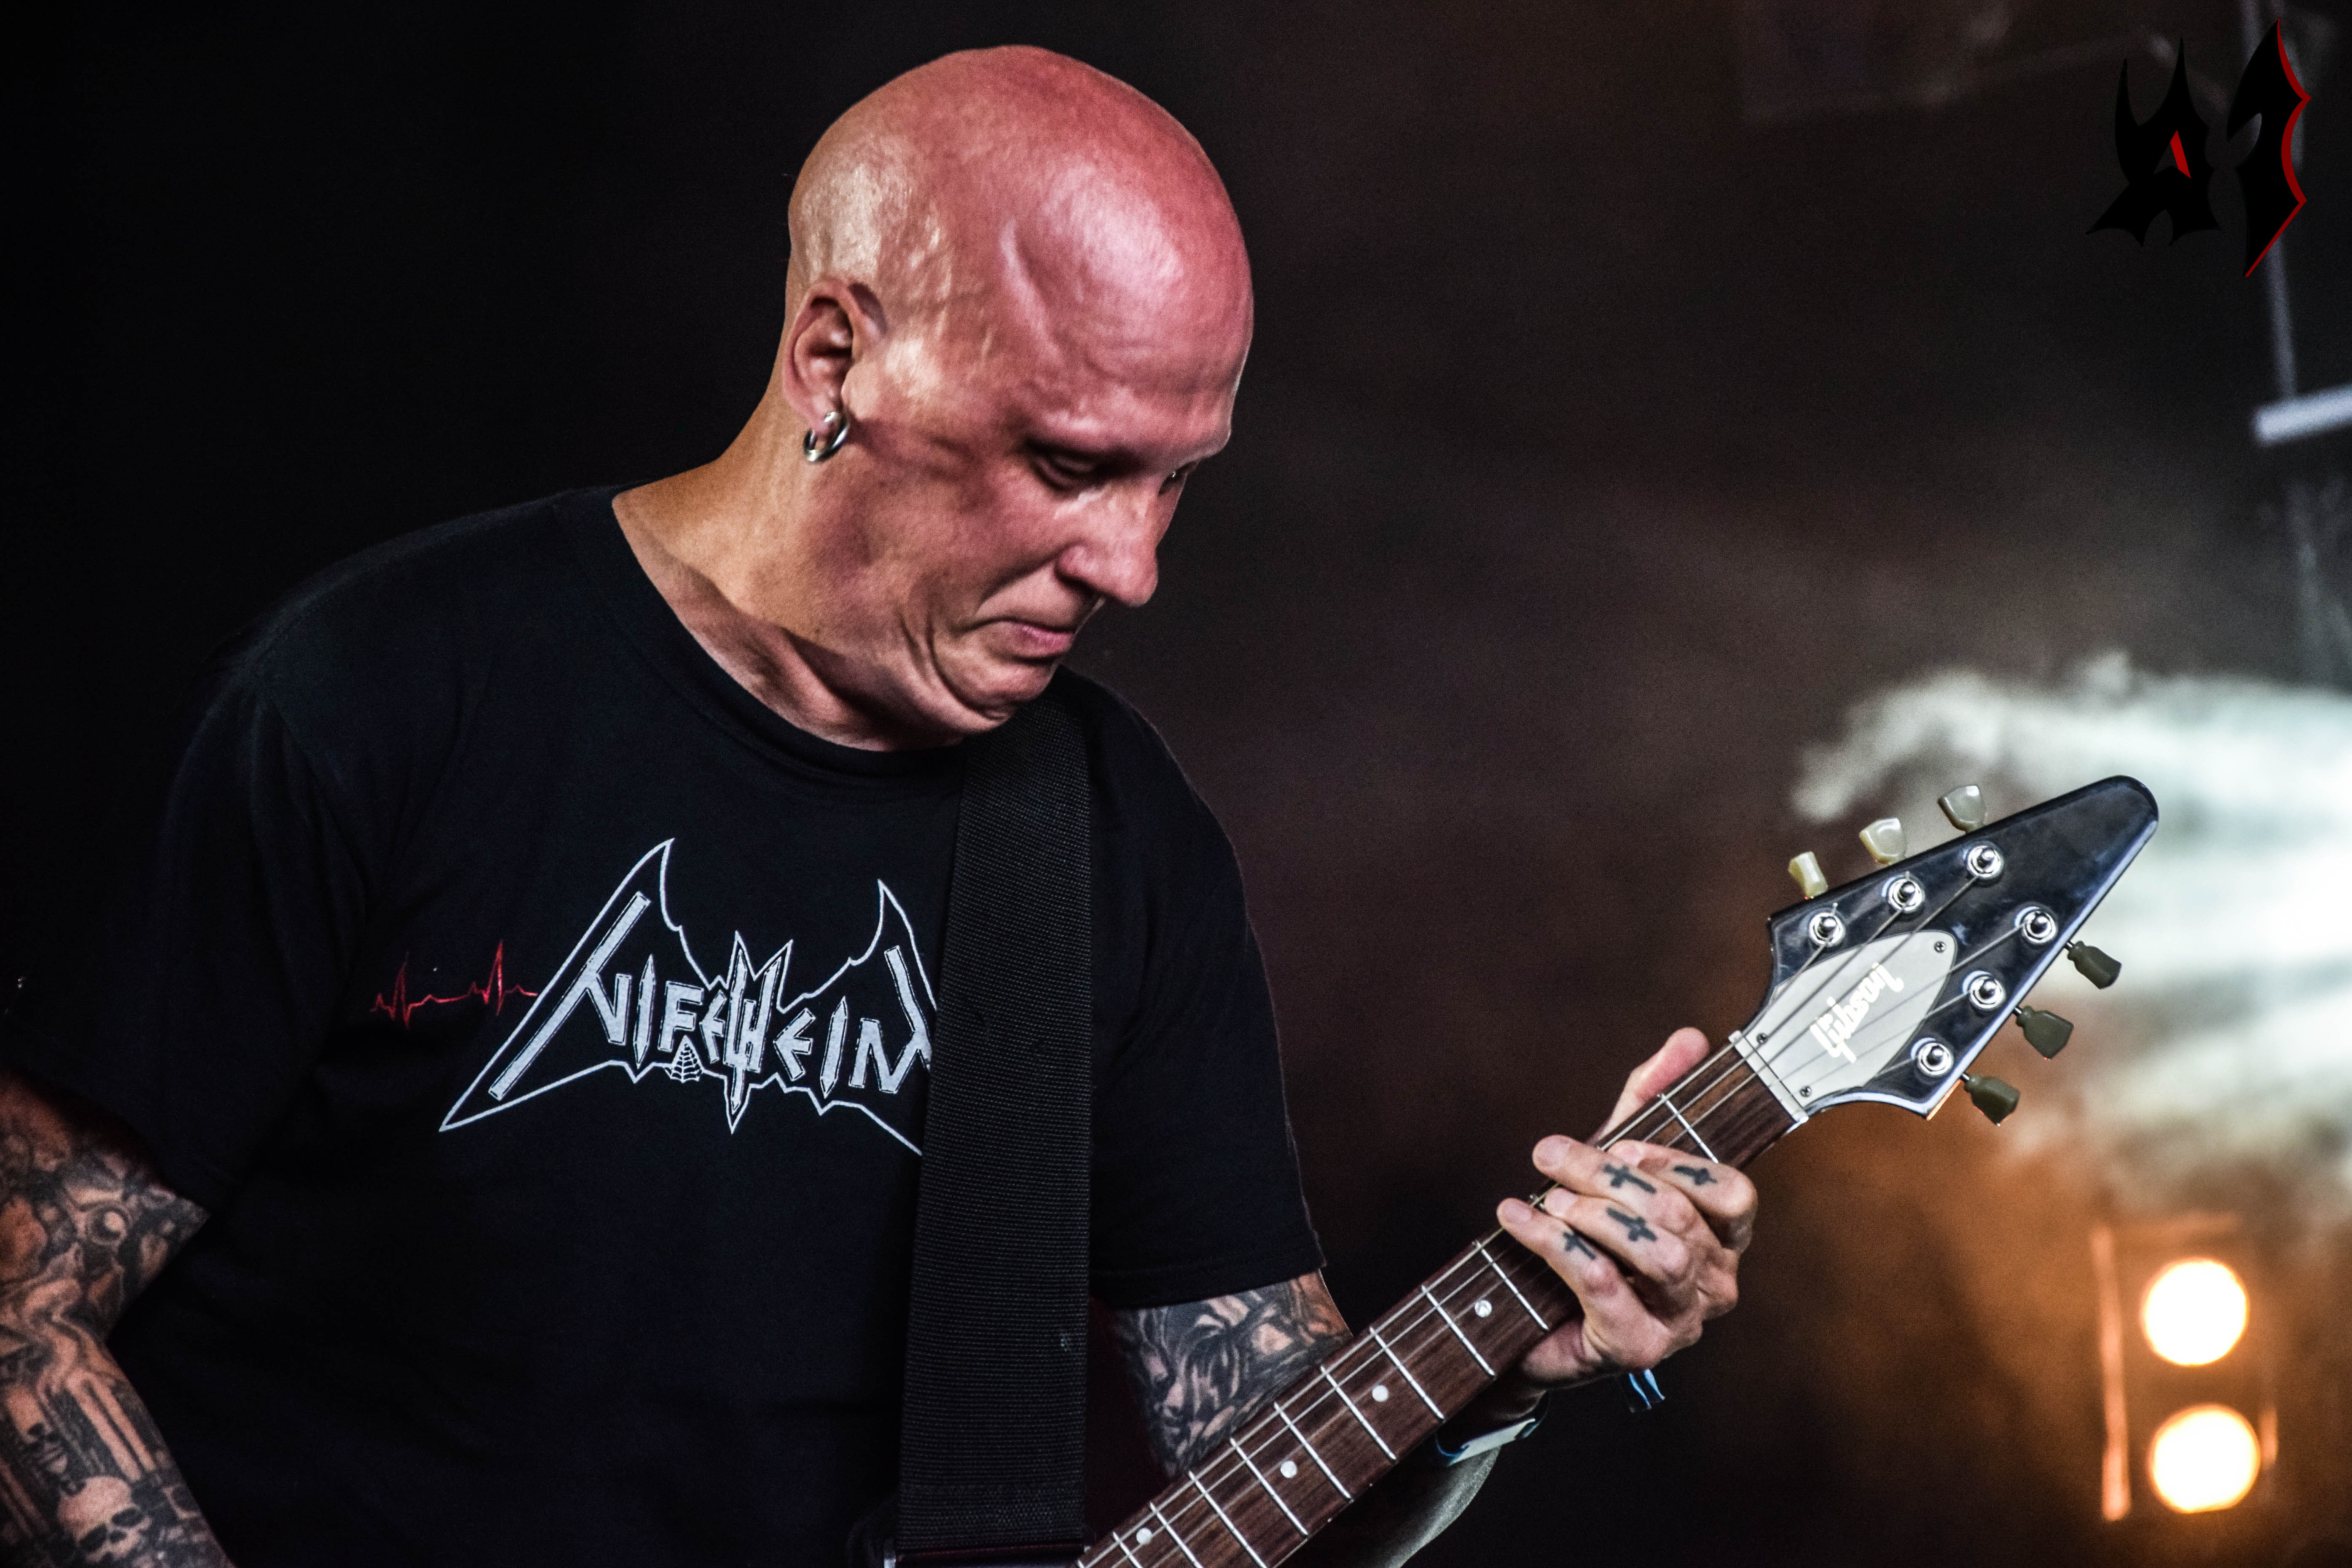 Hellfest - Day 3 - The Lurking Fear 8